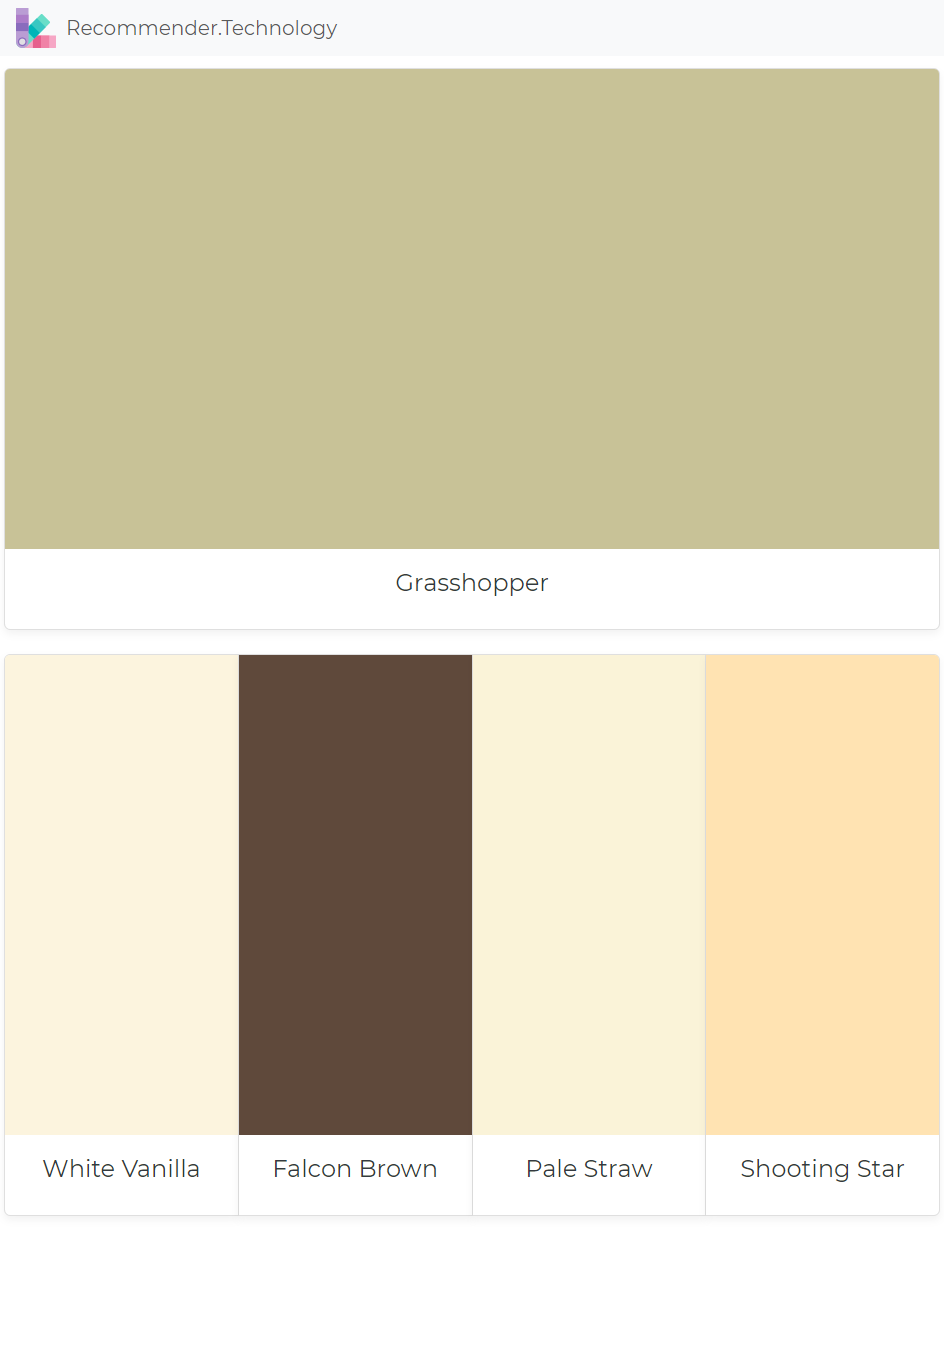 Grhopper White Vanilla Falcon Brown Pale Straw Shooting Star Paint Color Palettes